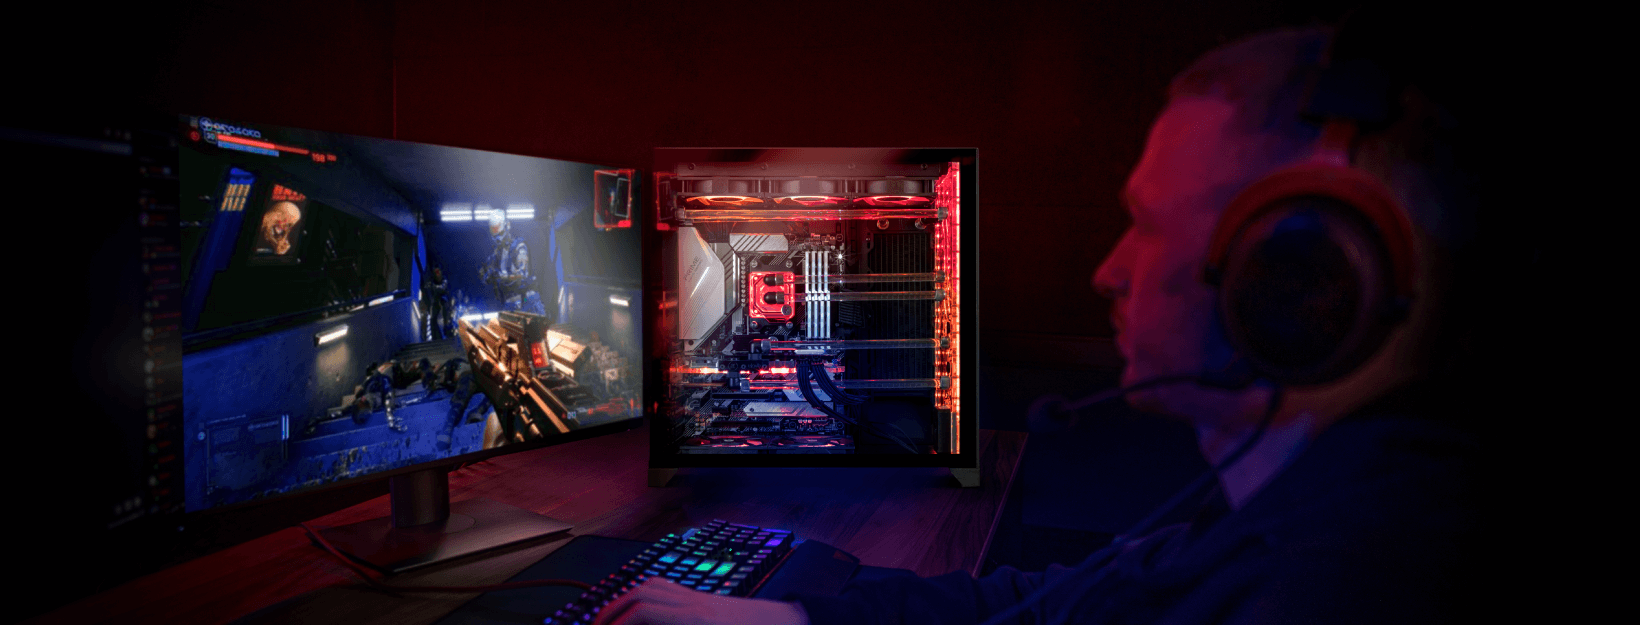 RGB vs. DRGB: What's Best for Your Gaming PC?